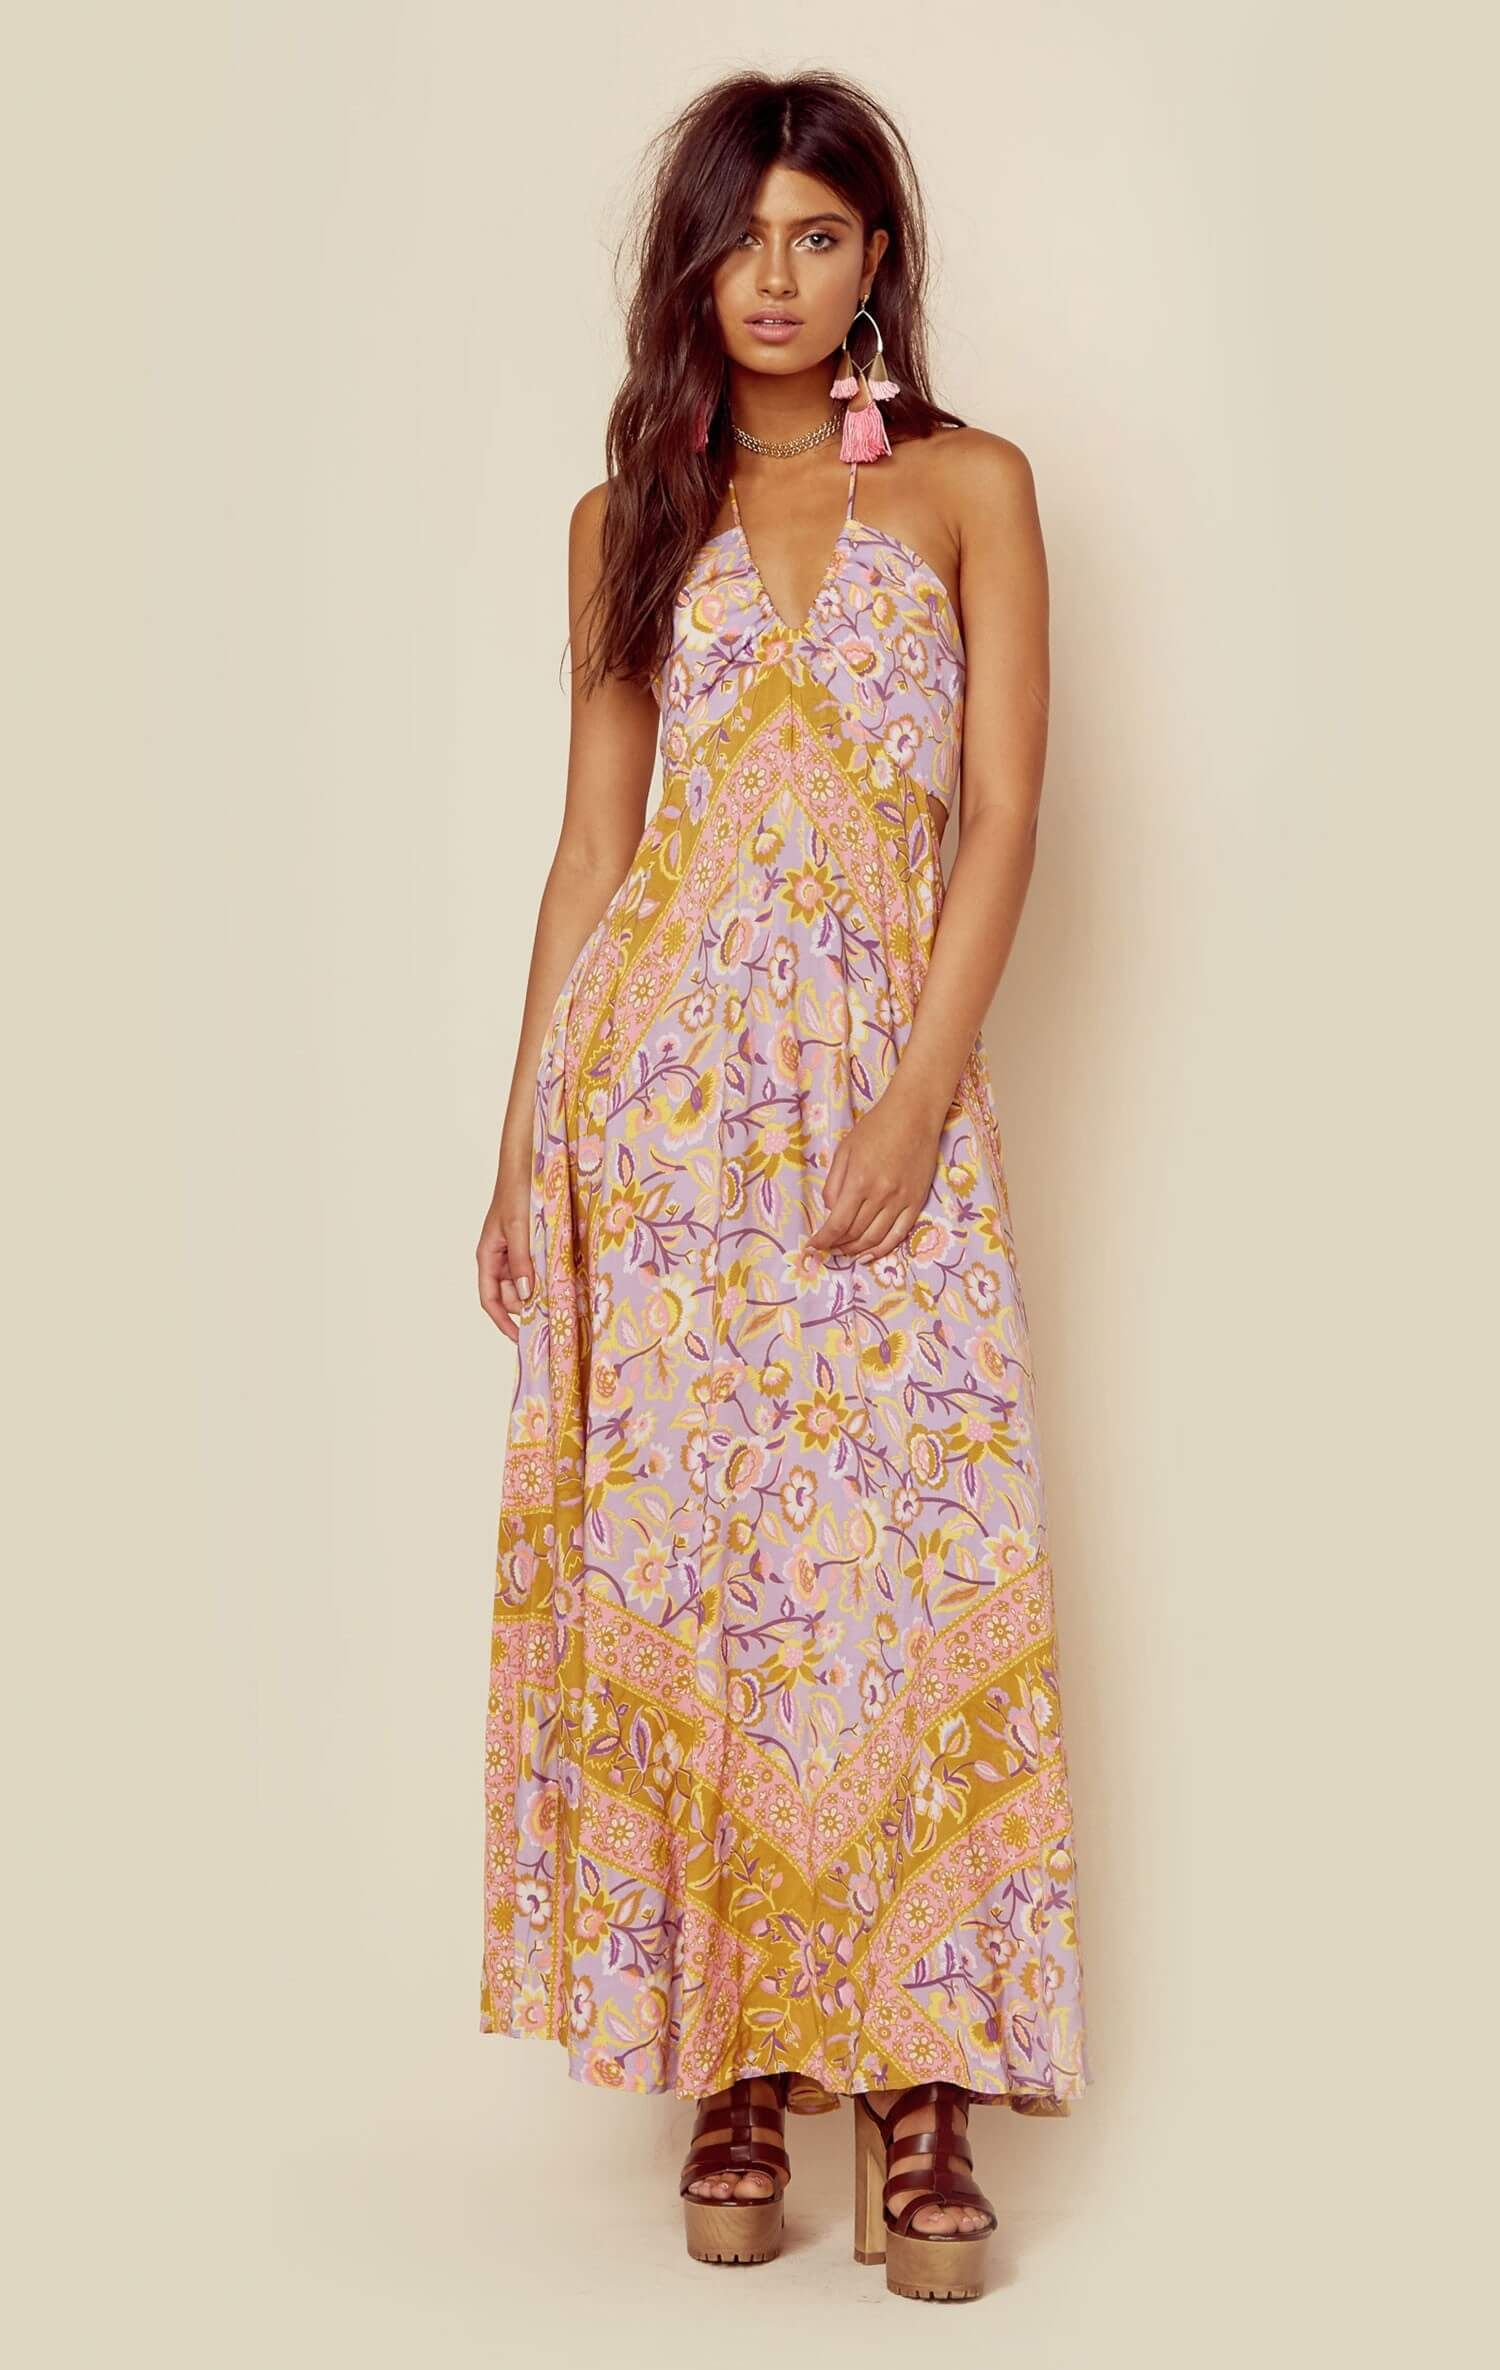 Alegre mini maxi dresses